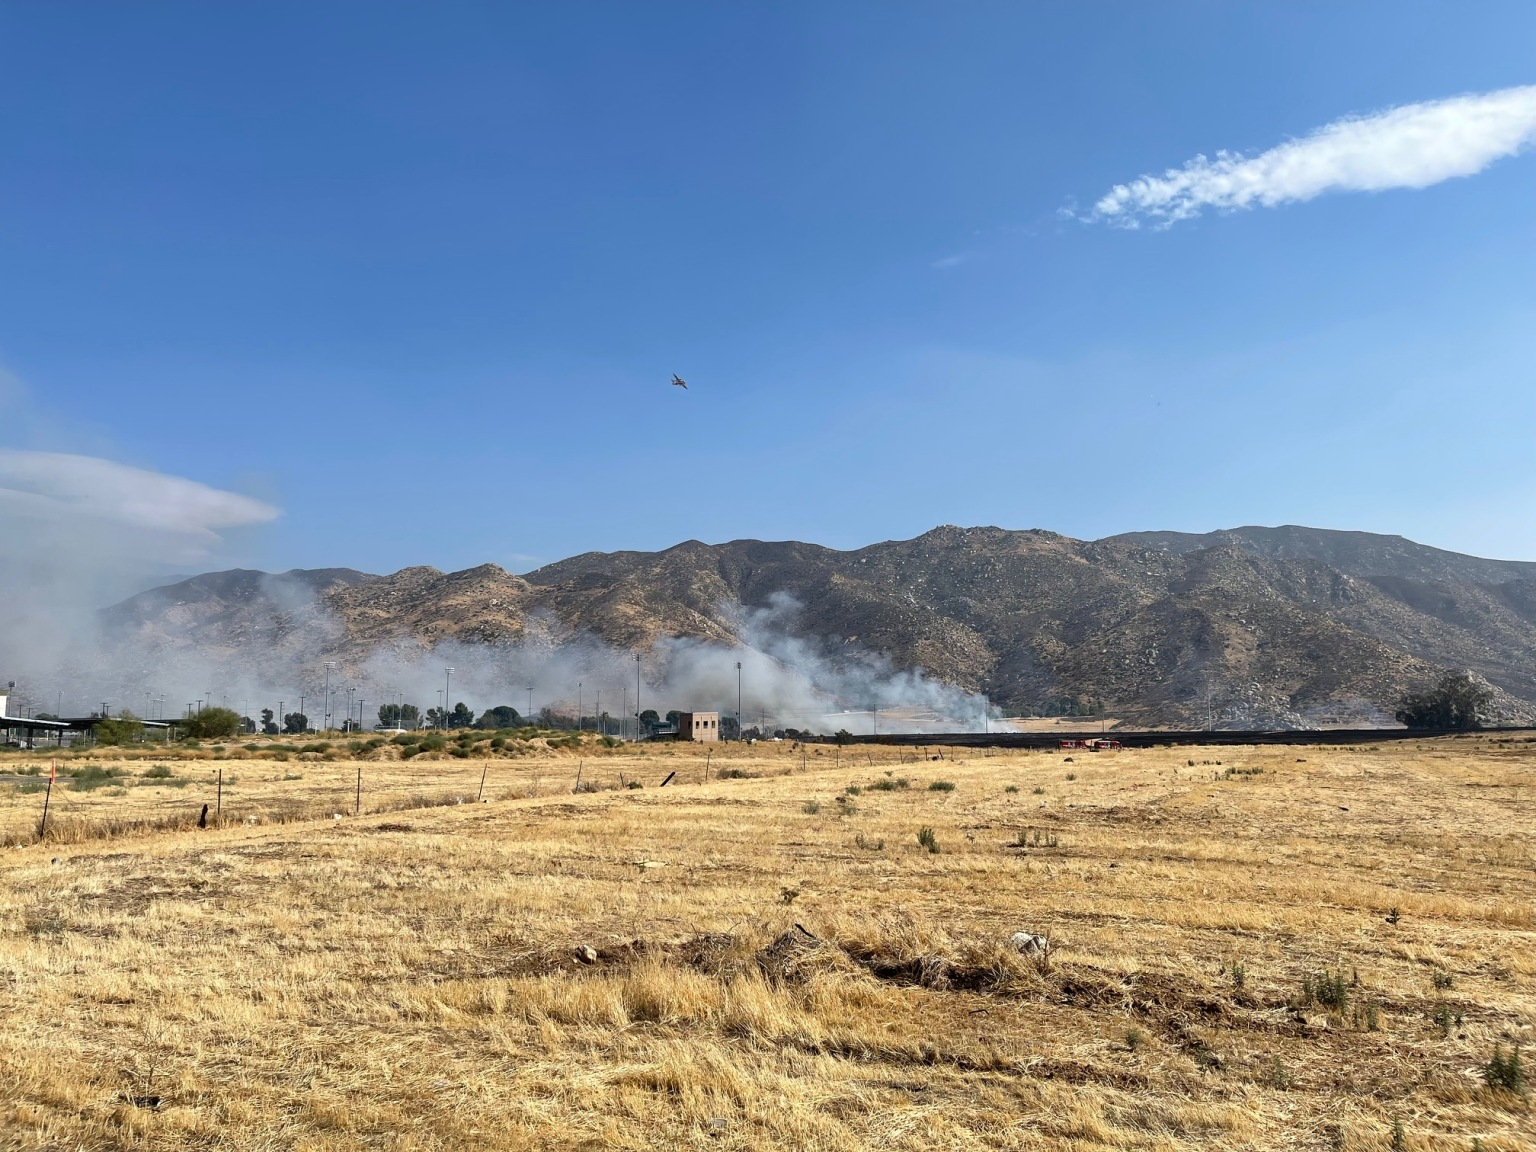 Banning fire grows to 200 acres, Prompting Evacuations